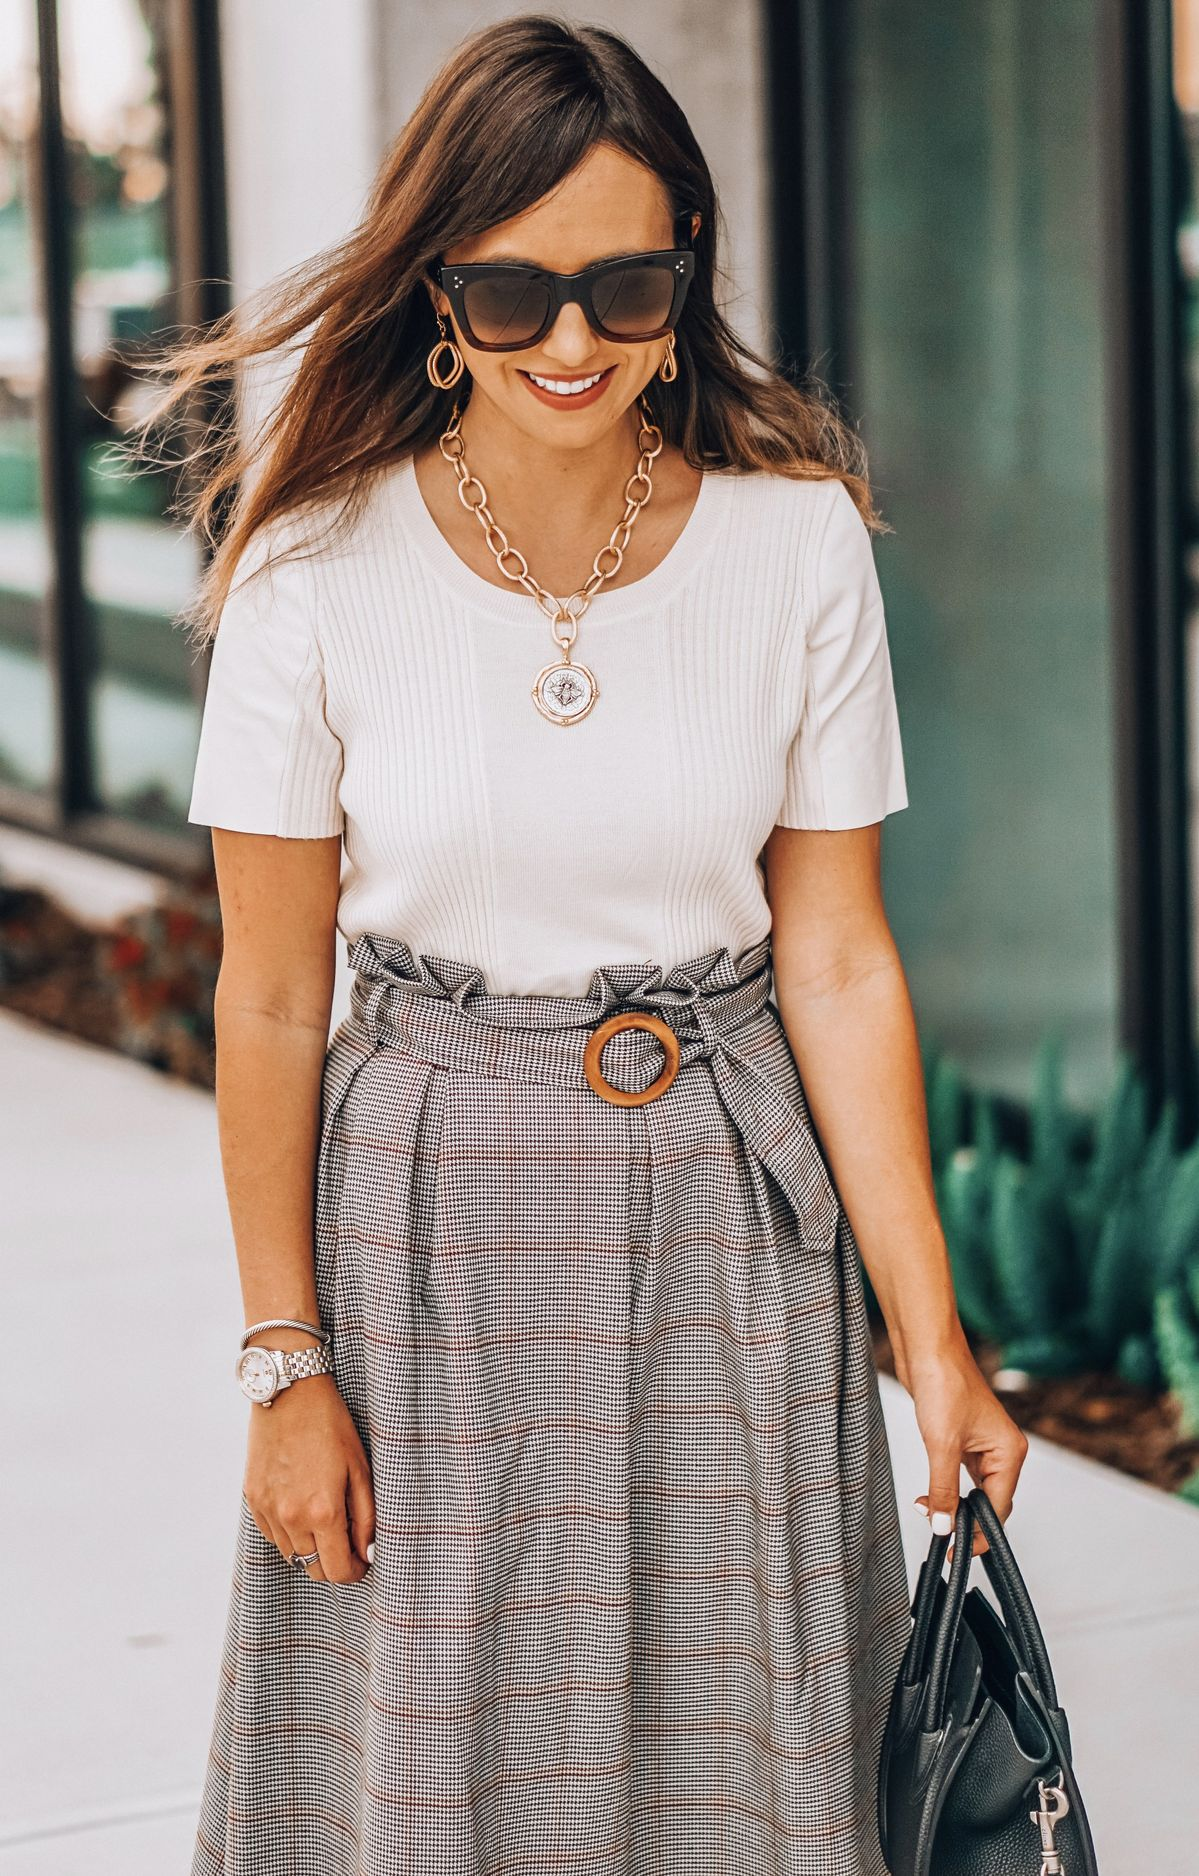 Chicwish checked skirt, Vince leather paneled cream top, Celine black nano bag with silver hardware, Susan Shaw jewelry, Celine Catherine sunglasses, Stuart Weitzman nearlynude sandals